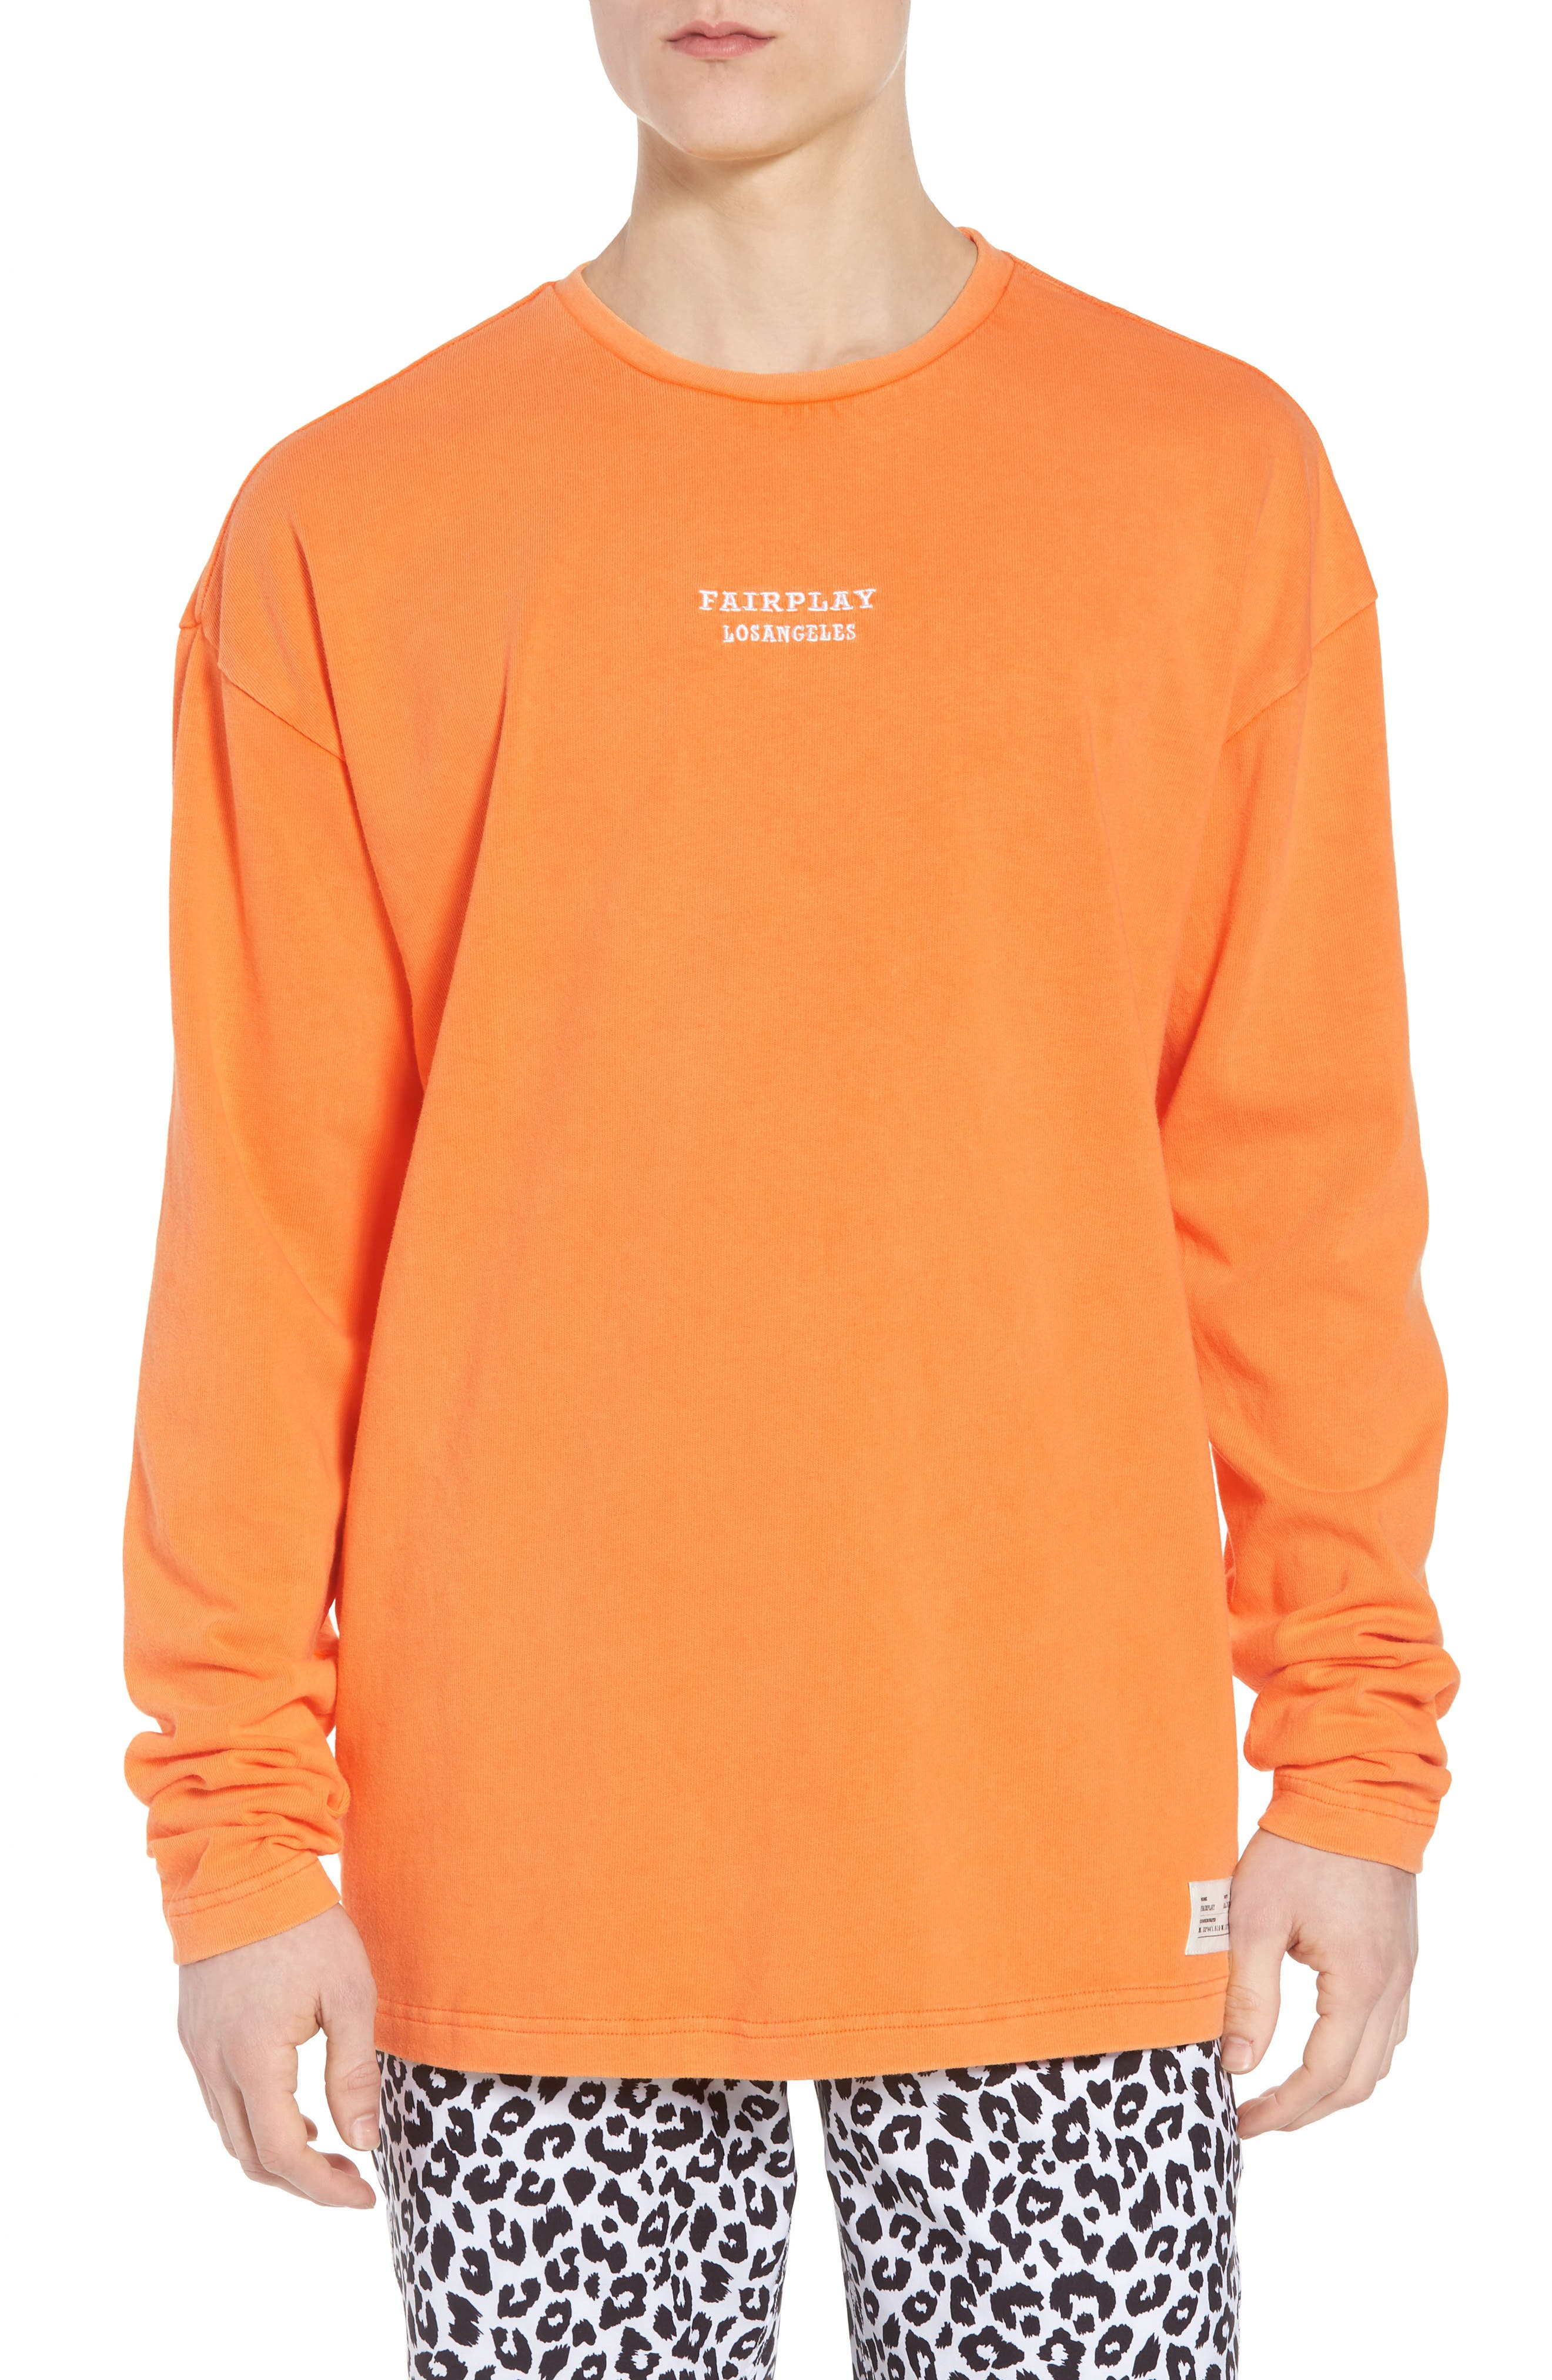 Anderson Sweatshirt,                             Main thumbnail 1, color,                             Orange